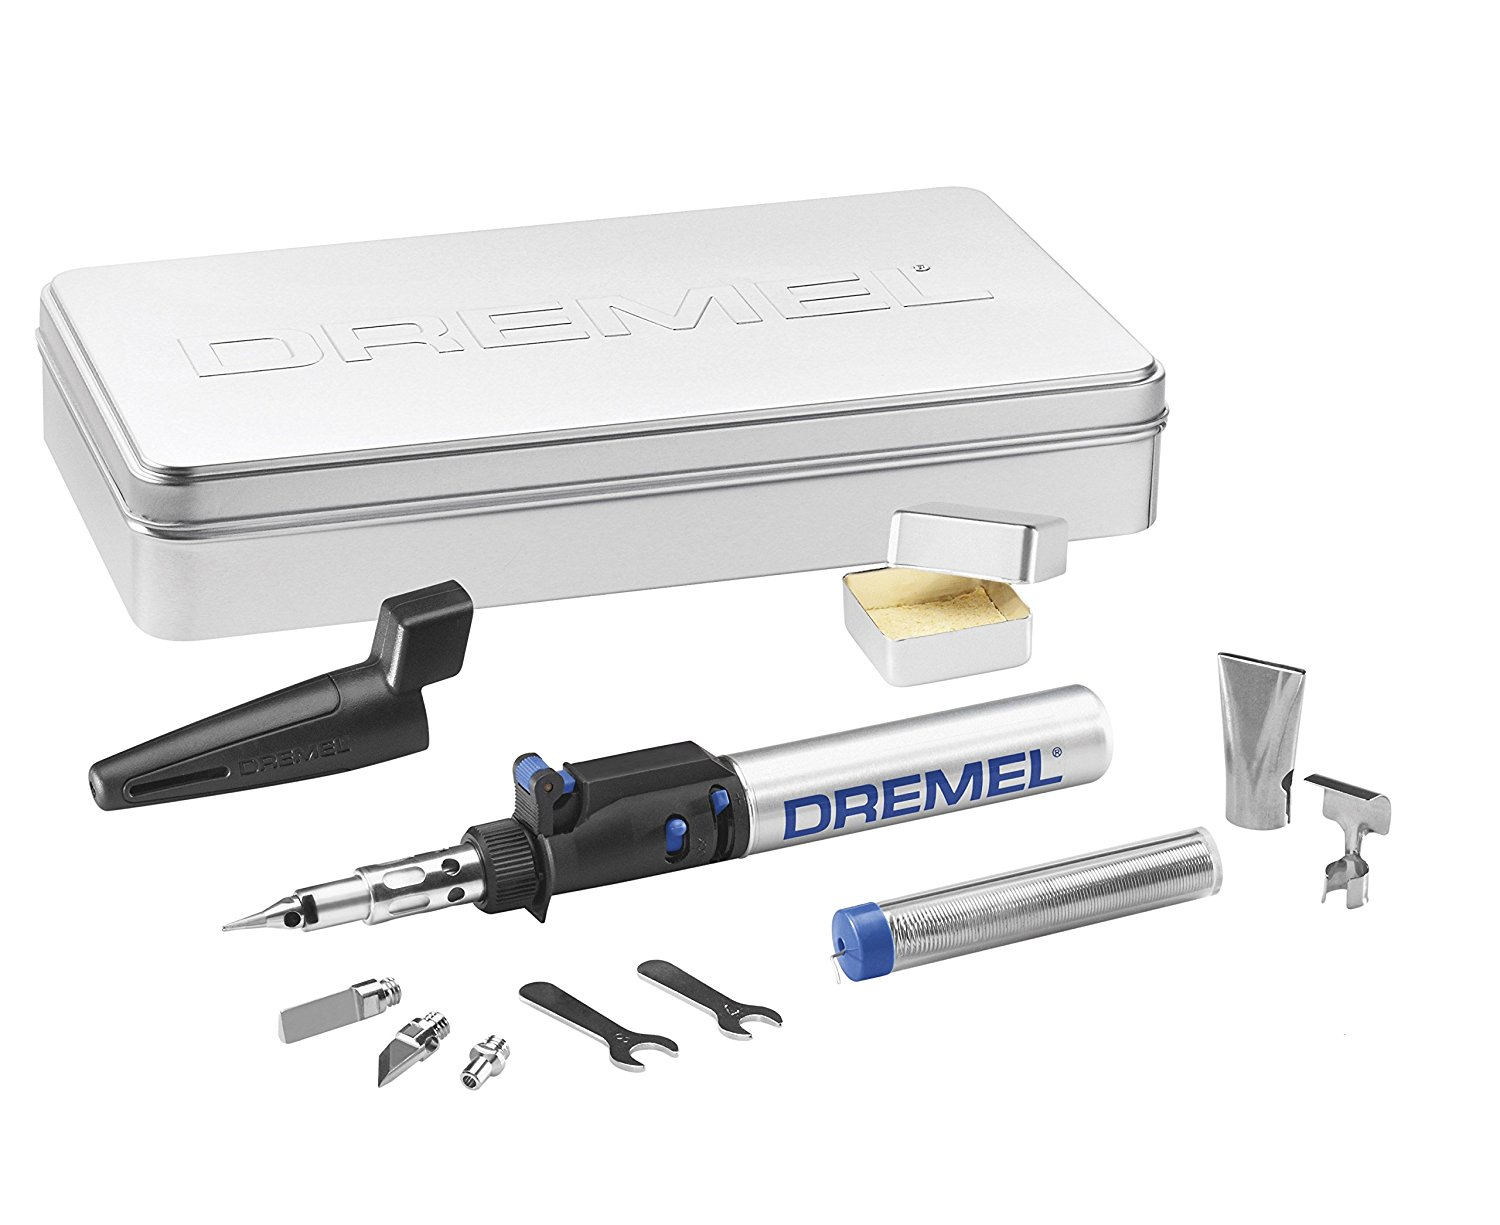 Dremel Versatip 2000 01 Butane Soldering Torch Review Best Gun For Circuit Boards X Tronic 5040 Xts All In One Hot Air Stations